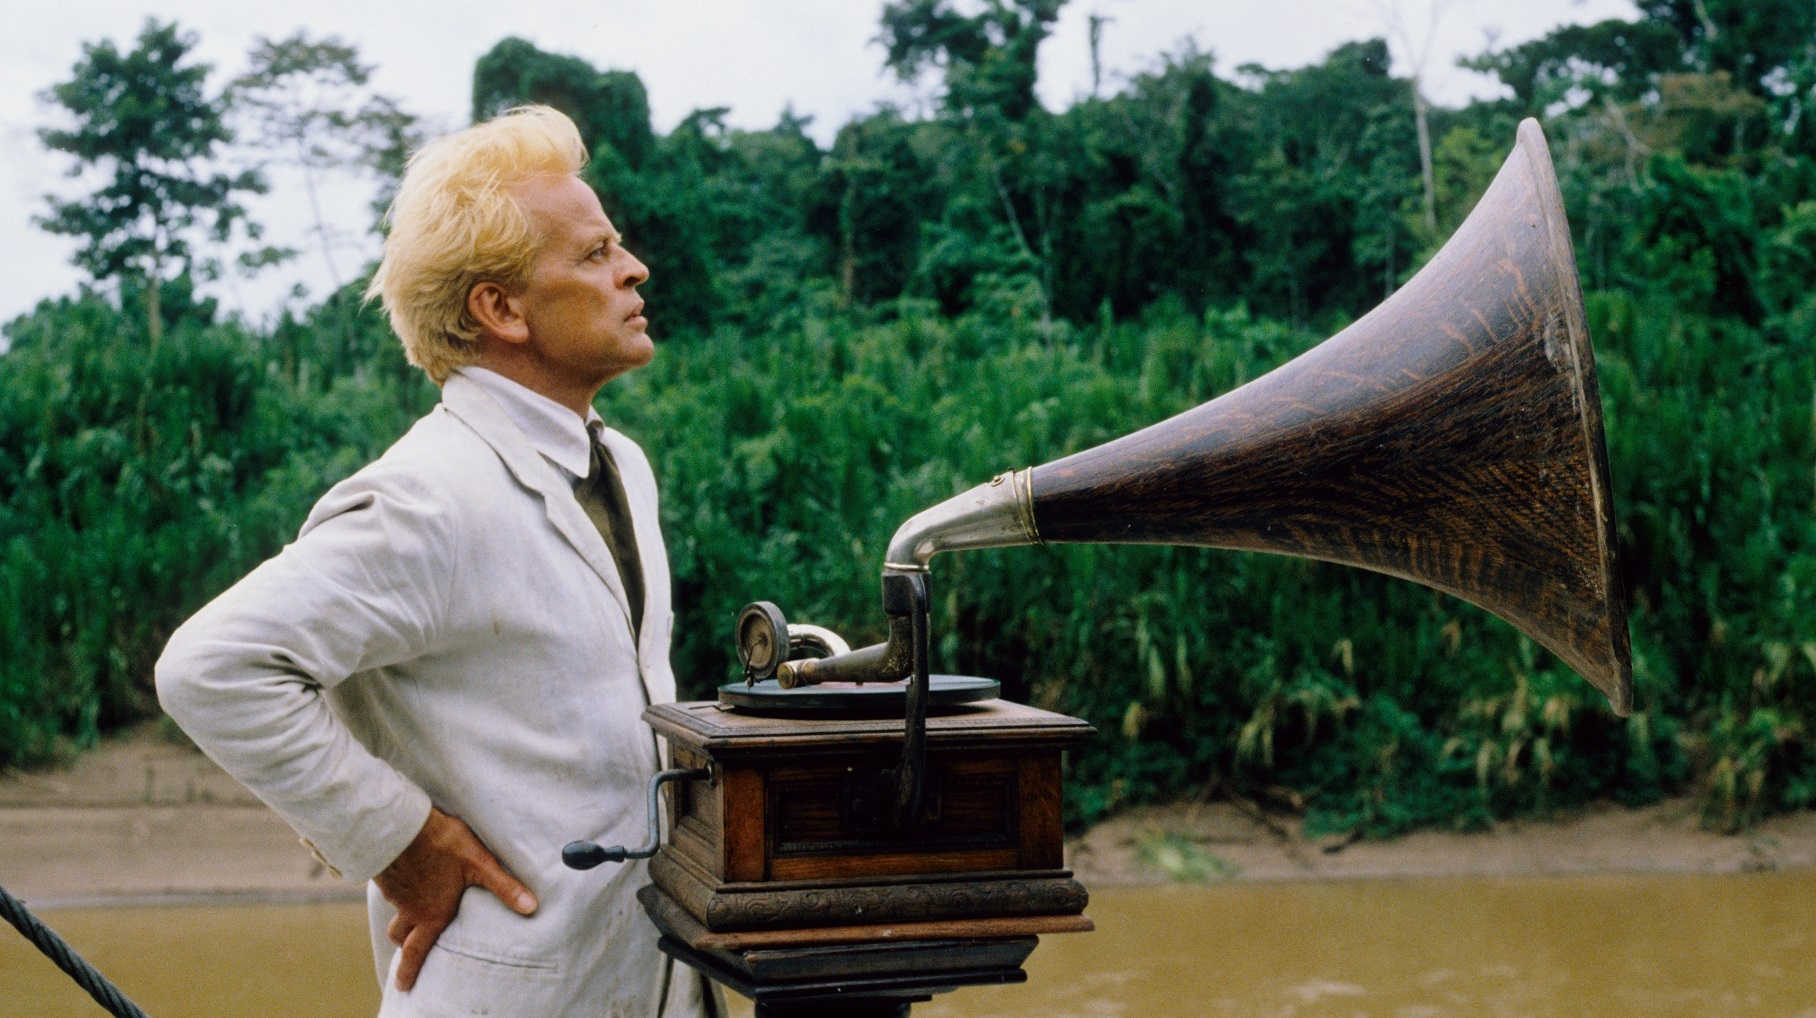 Still image from film Fitzcarraldo